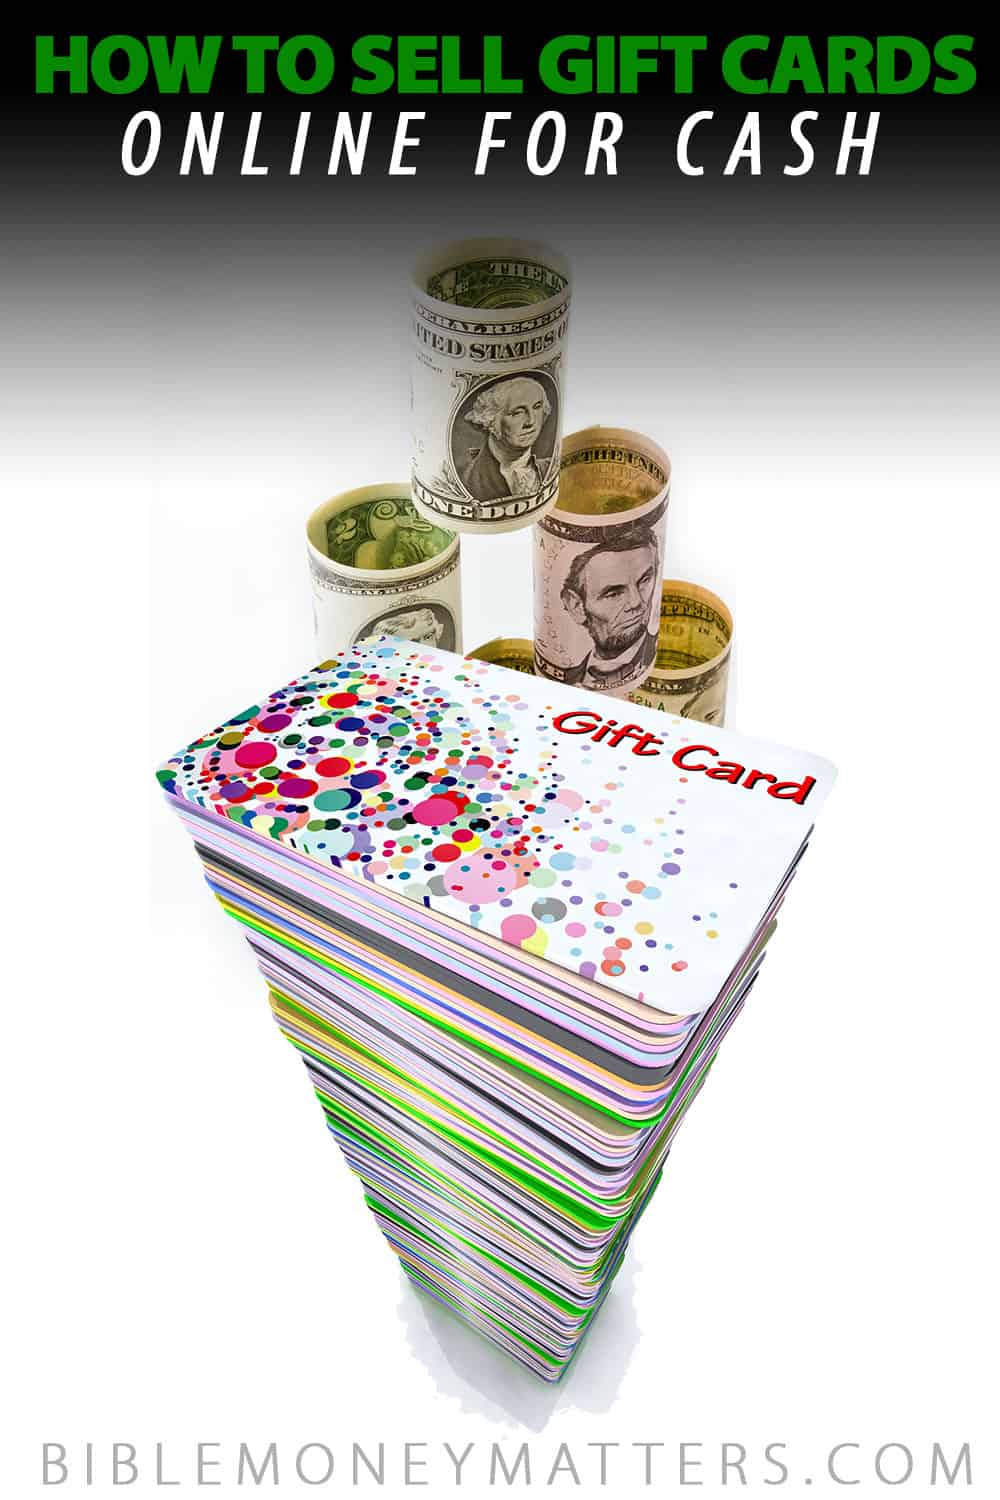 How To Sell Gift Cards Online For Cash